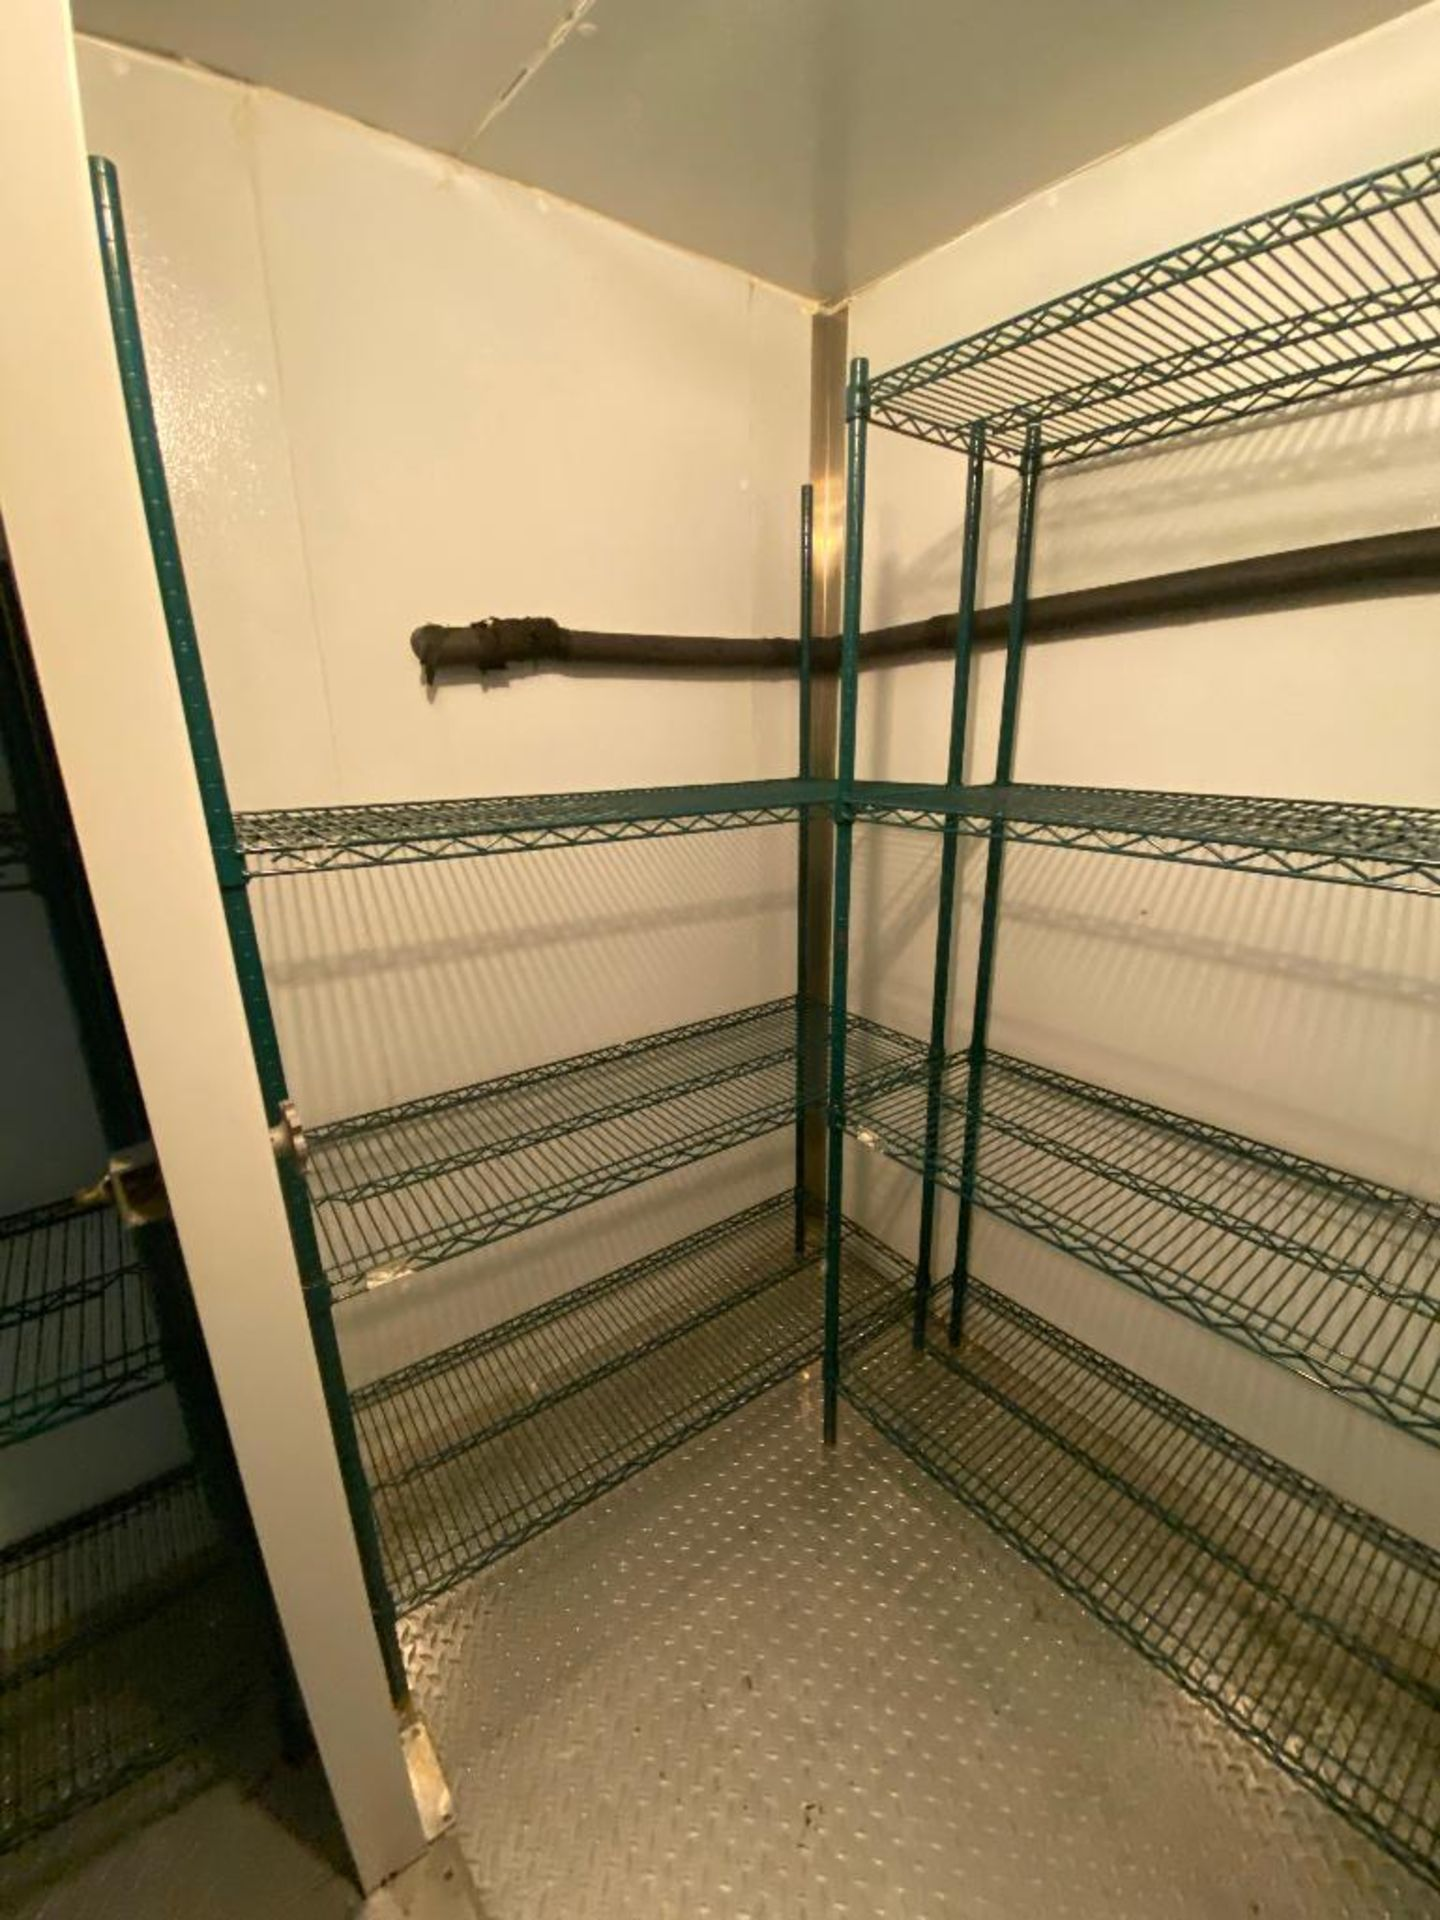 LOT OF (3) GREEN WIRE STORAGE RACKS, ASSORTED SIZES - Image 2 of 4